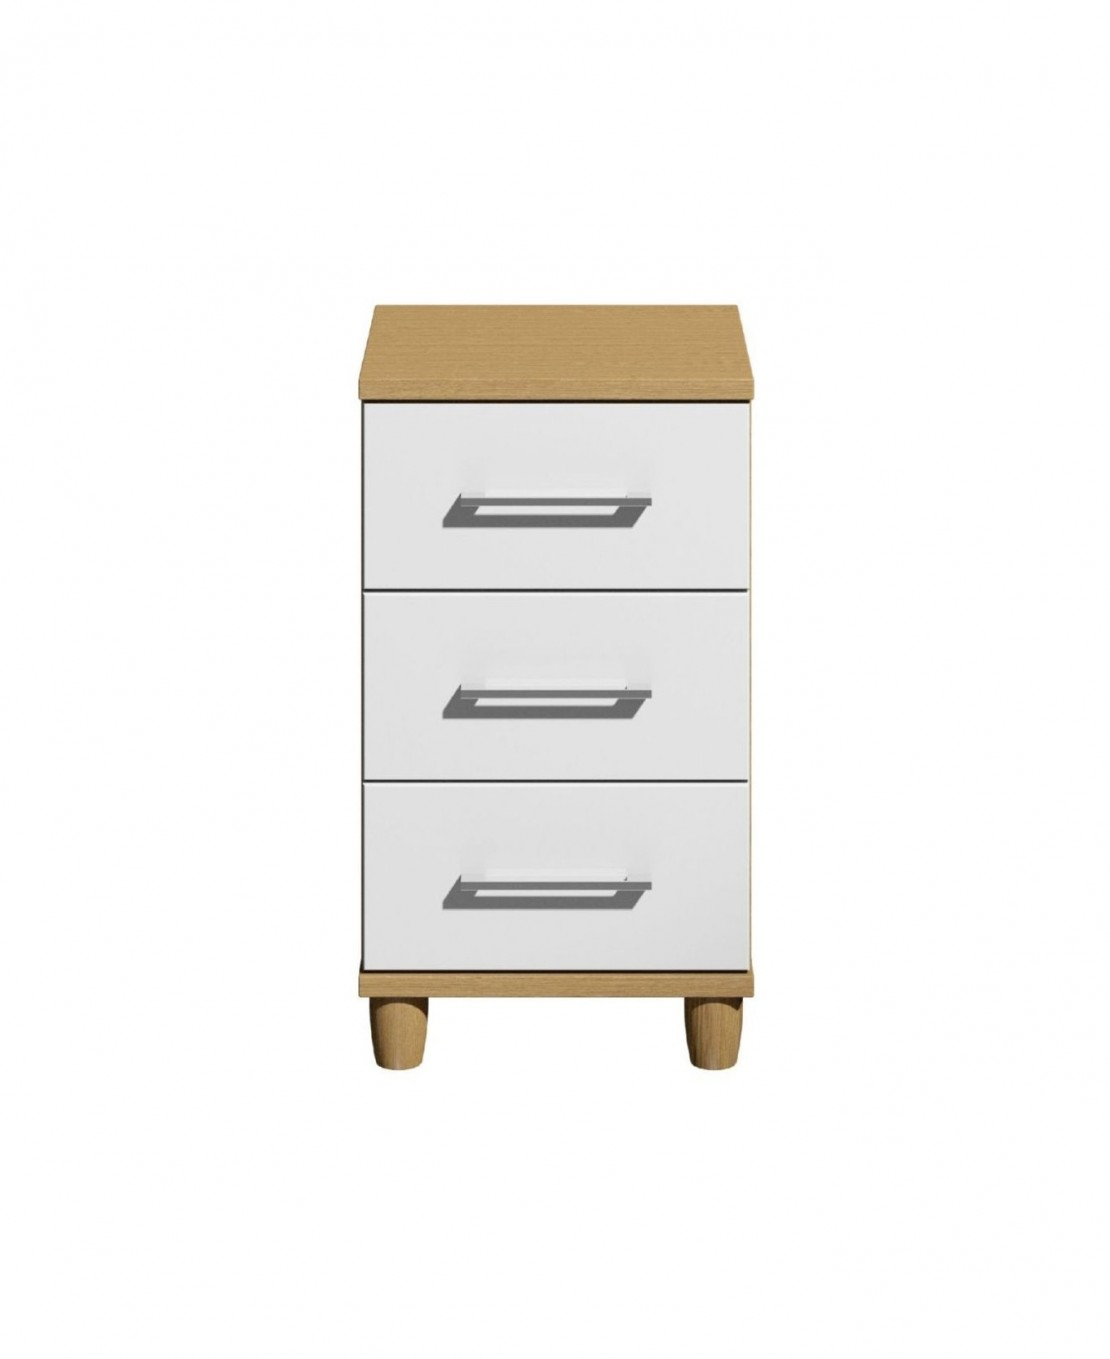 /_images/product-photos/kt-furniture-vardy-3-drawer-narrow-chest-white-a.jpg